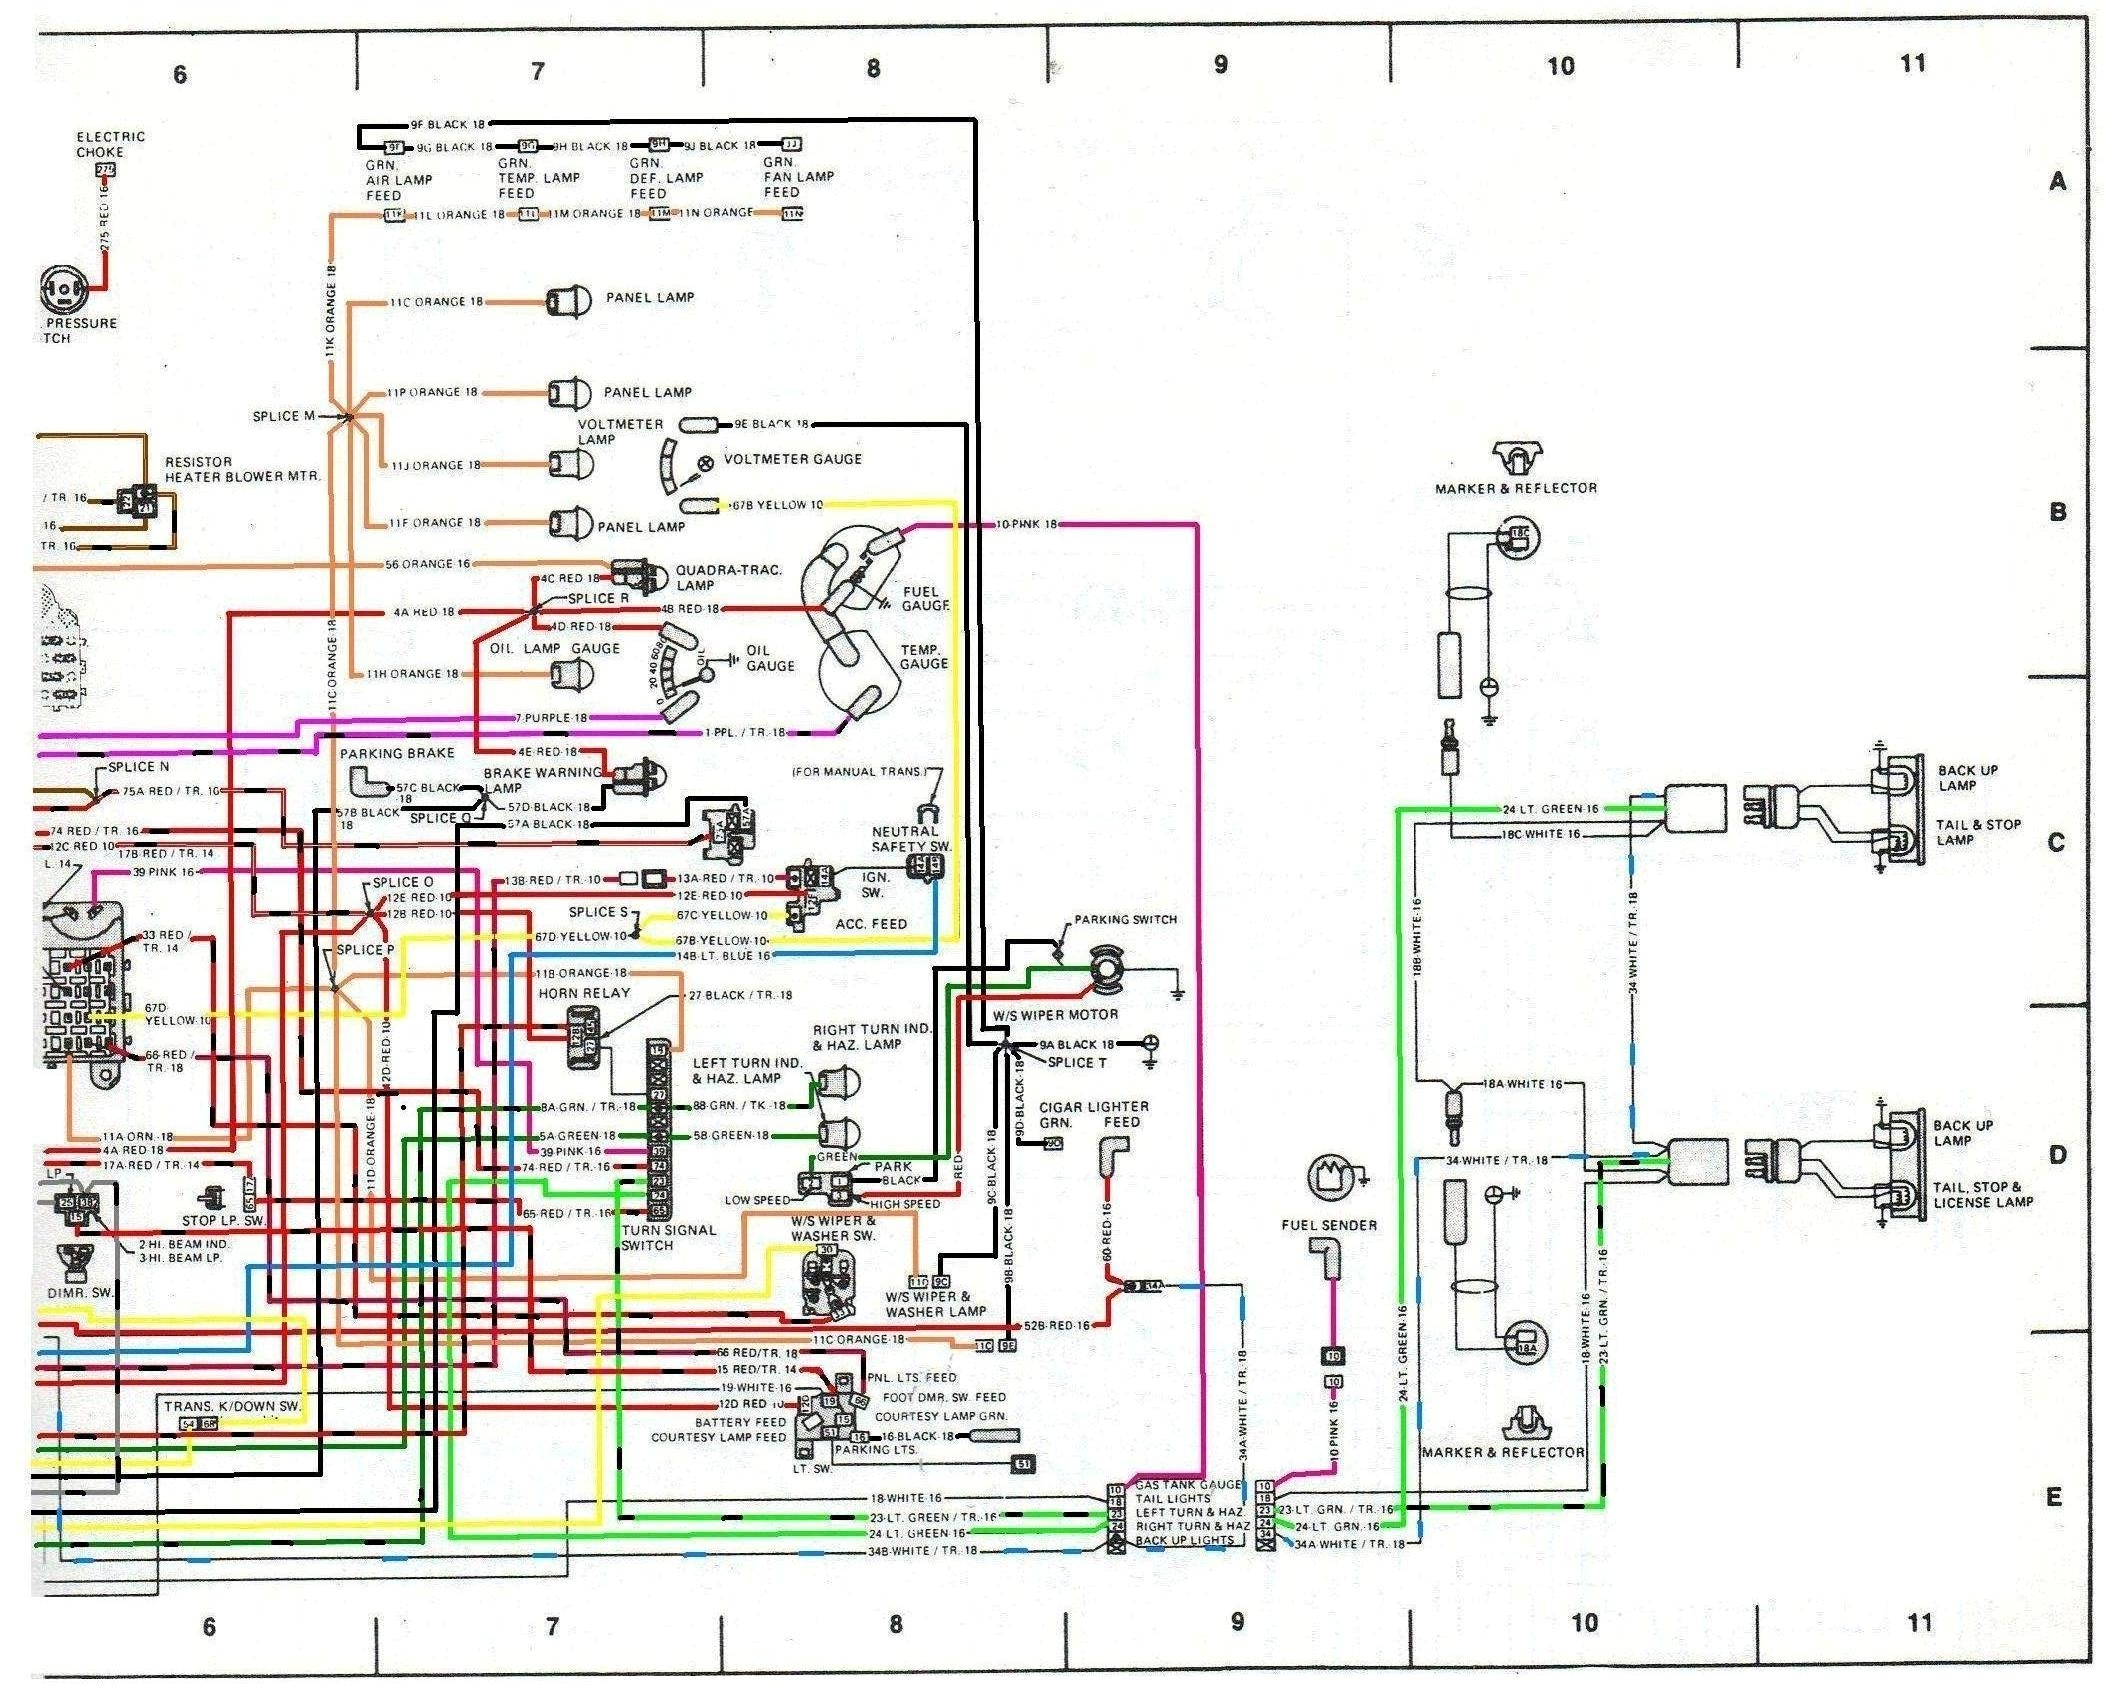 E4a Wiring Diagram For 1976 And 1977 Cj5 Jeep